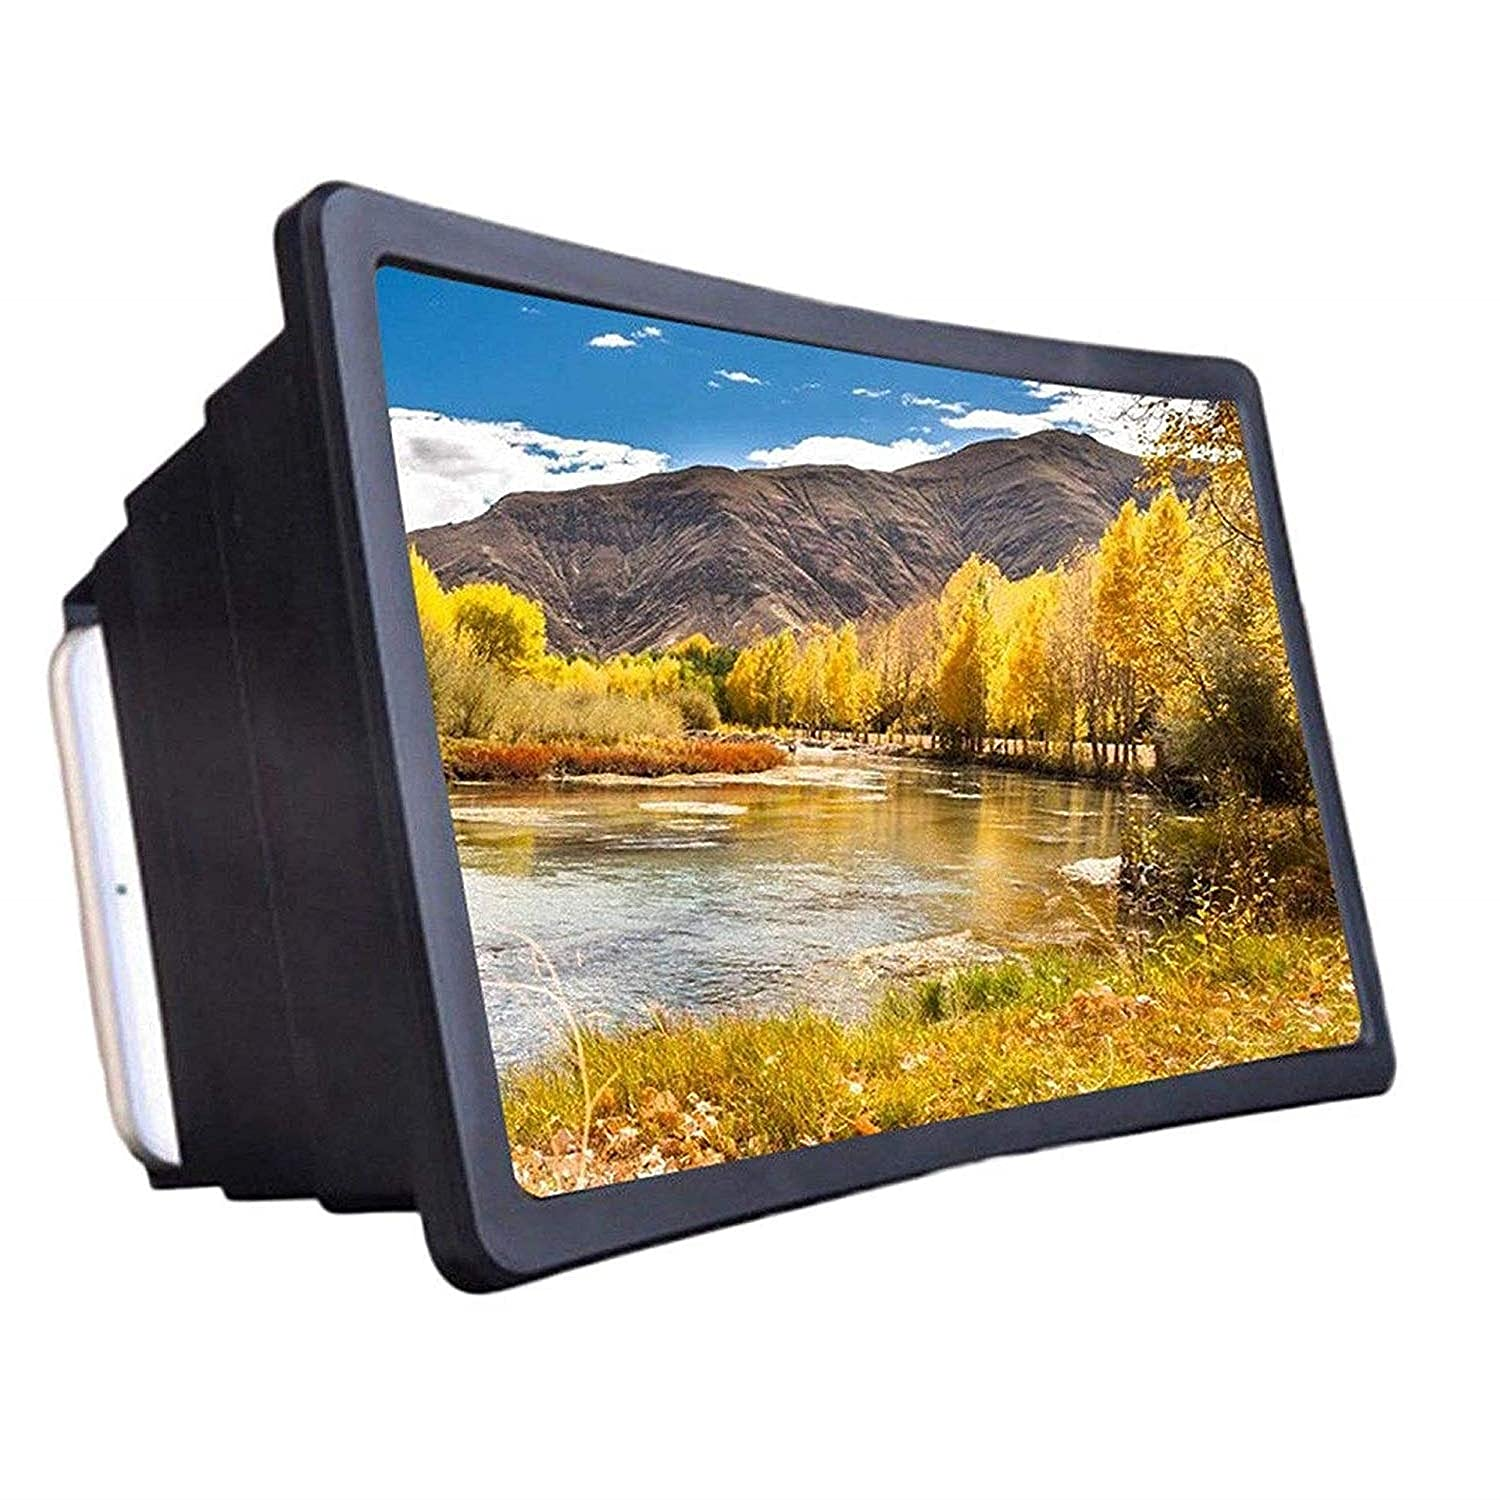 Ultra Eyes Protection Enlarged Mobile Phone 3D / Screen Magnifier F2-3D Video For All Smartphones